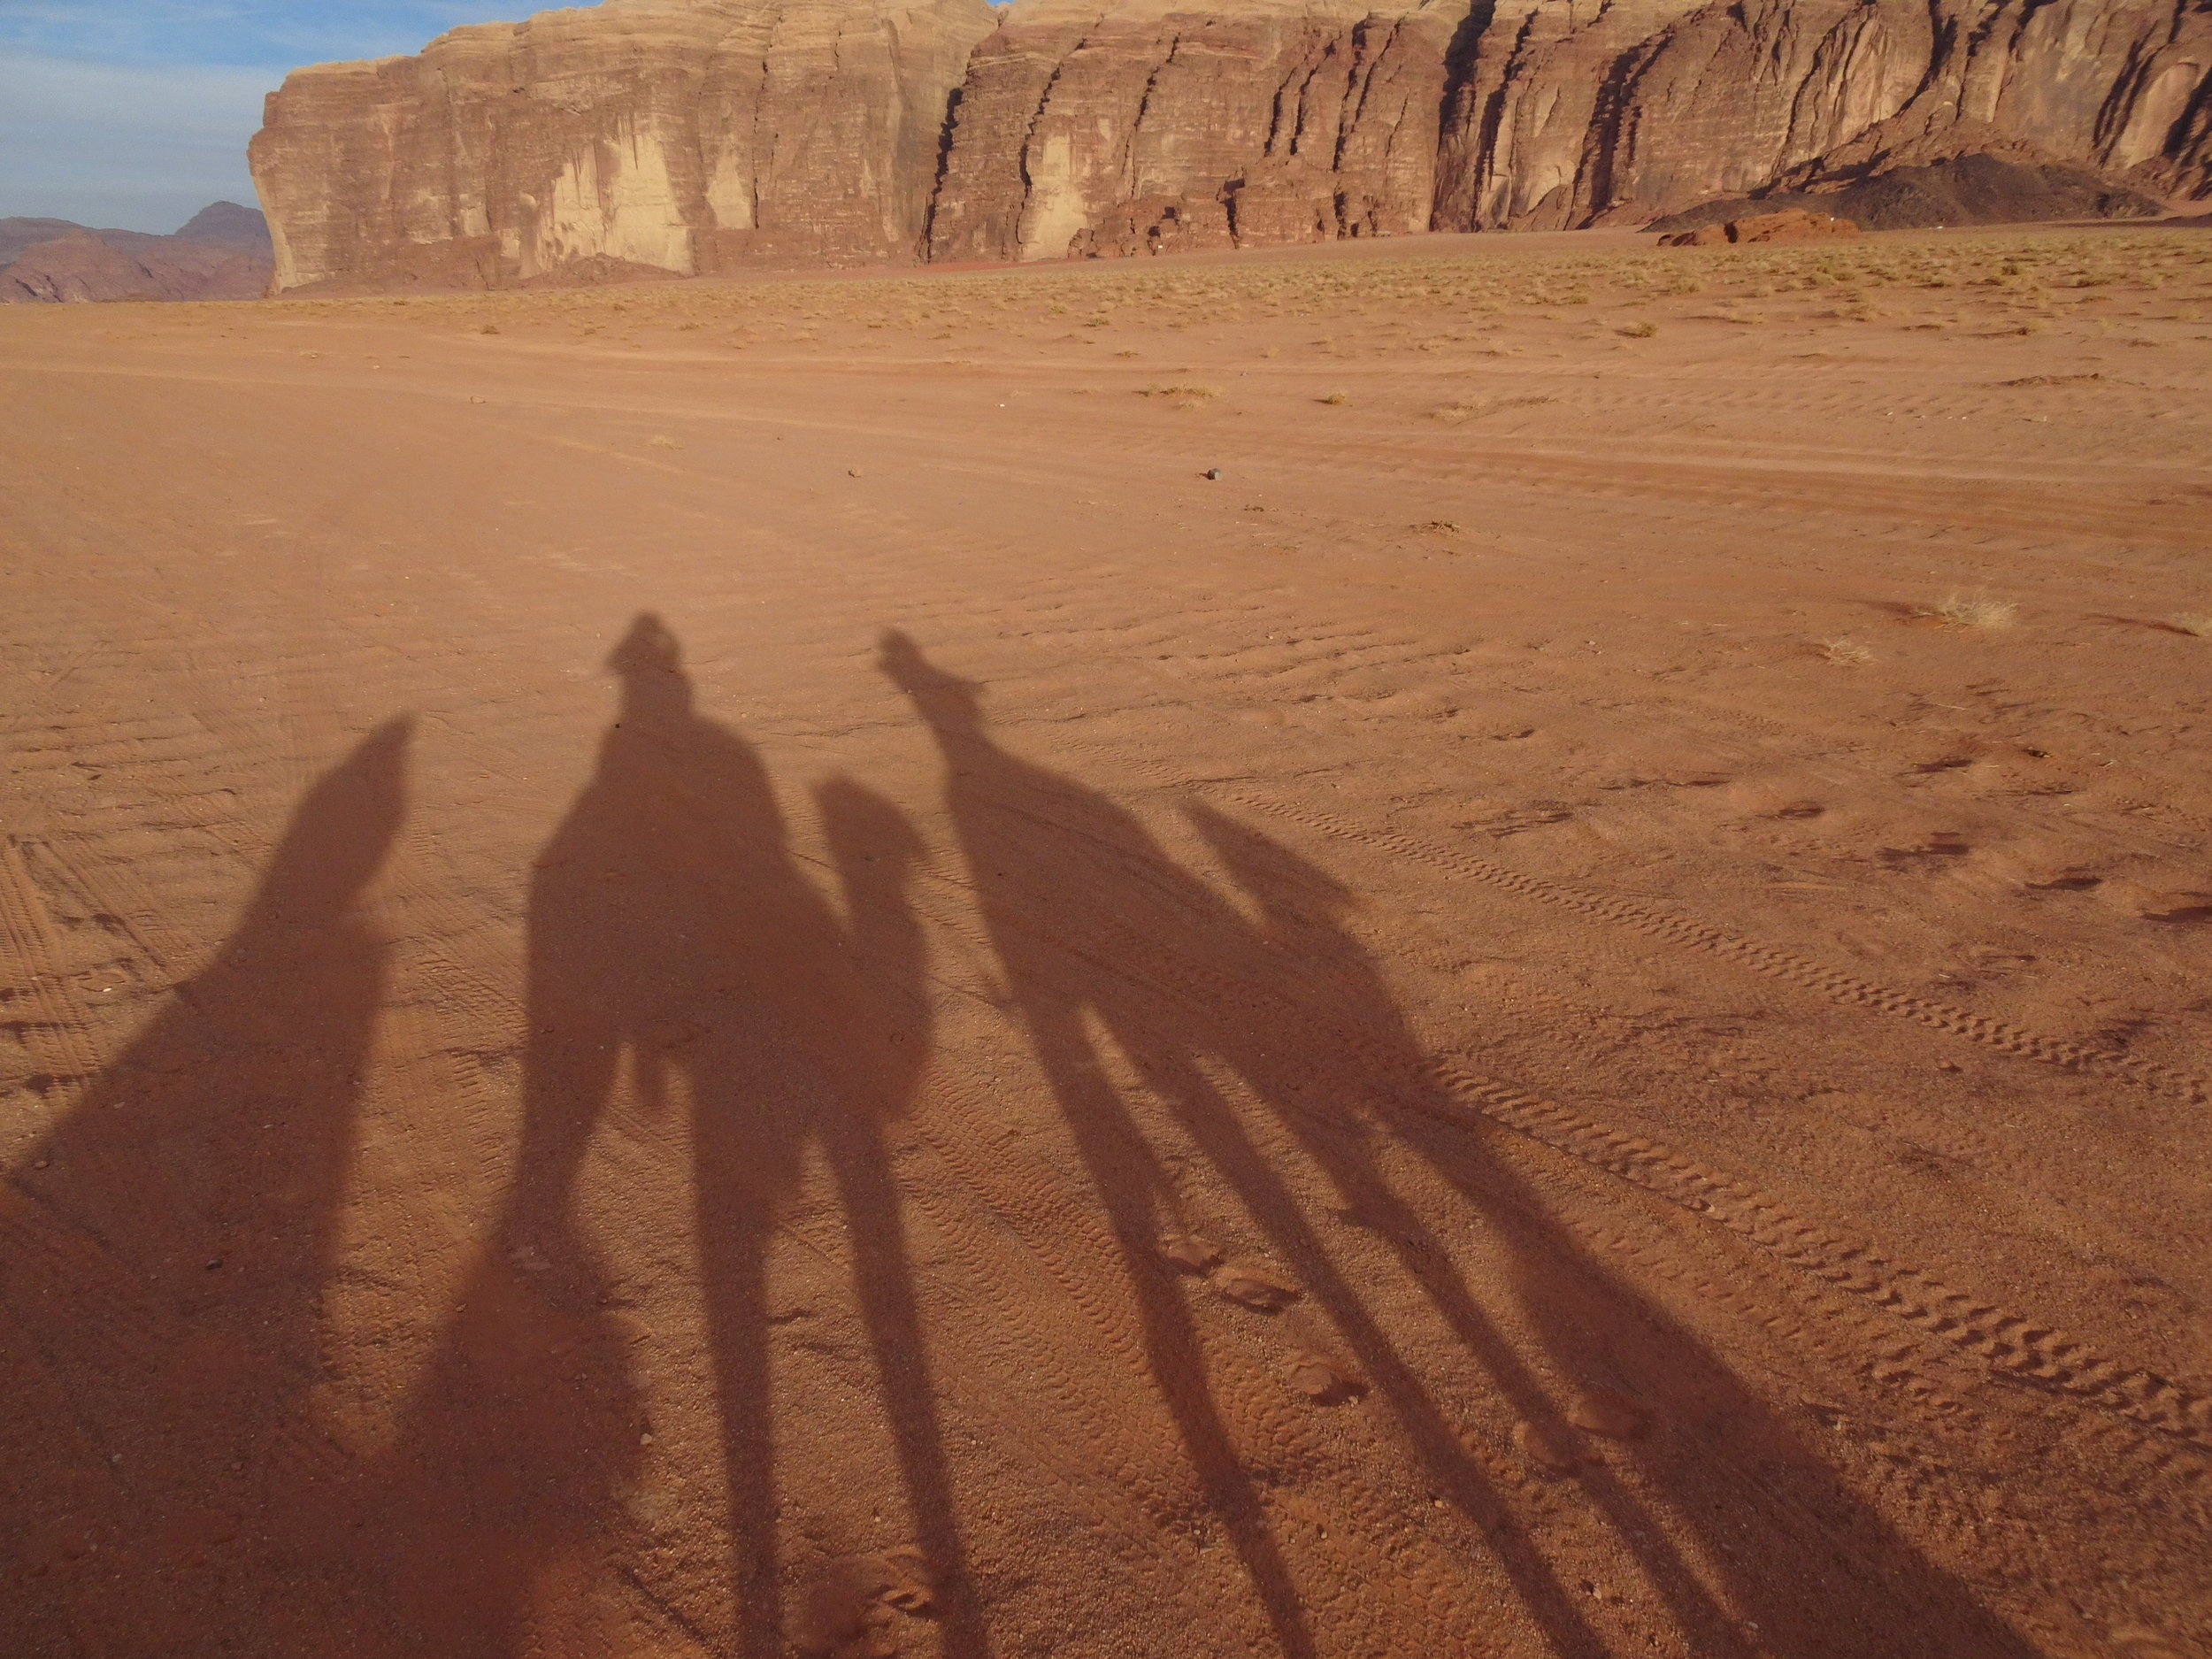 Riding camels in Wadi Rum